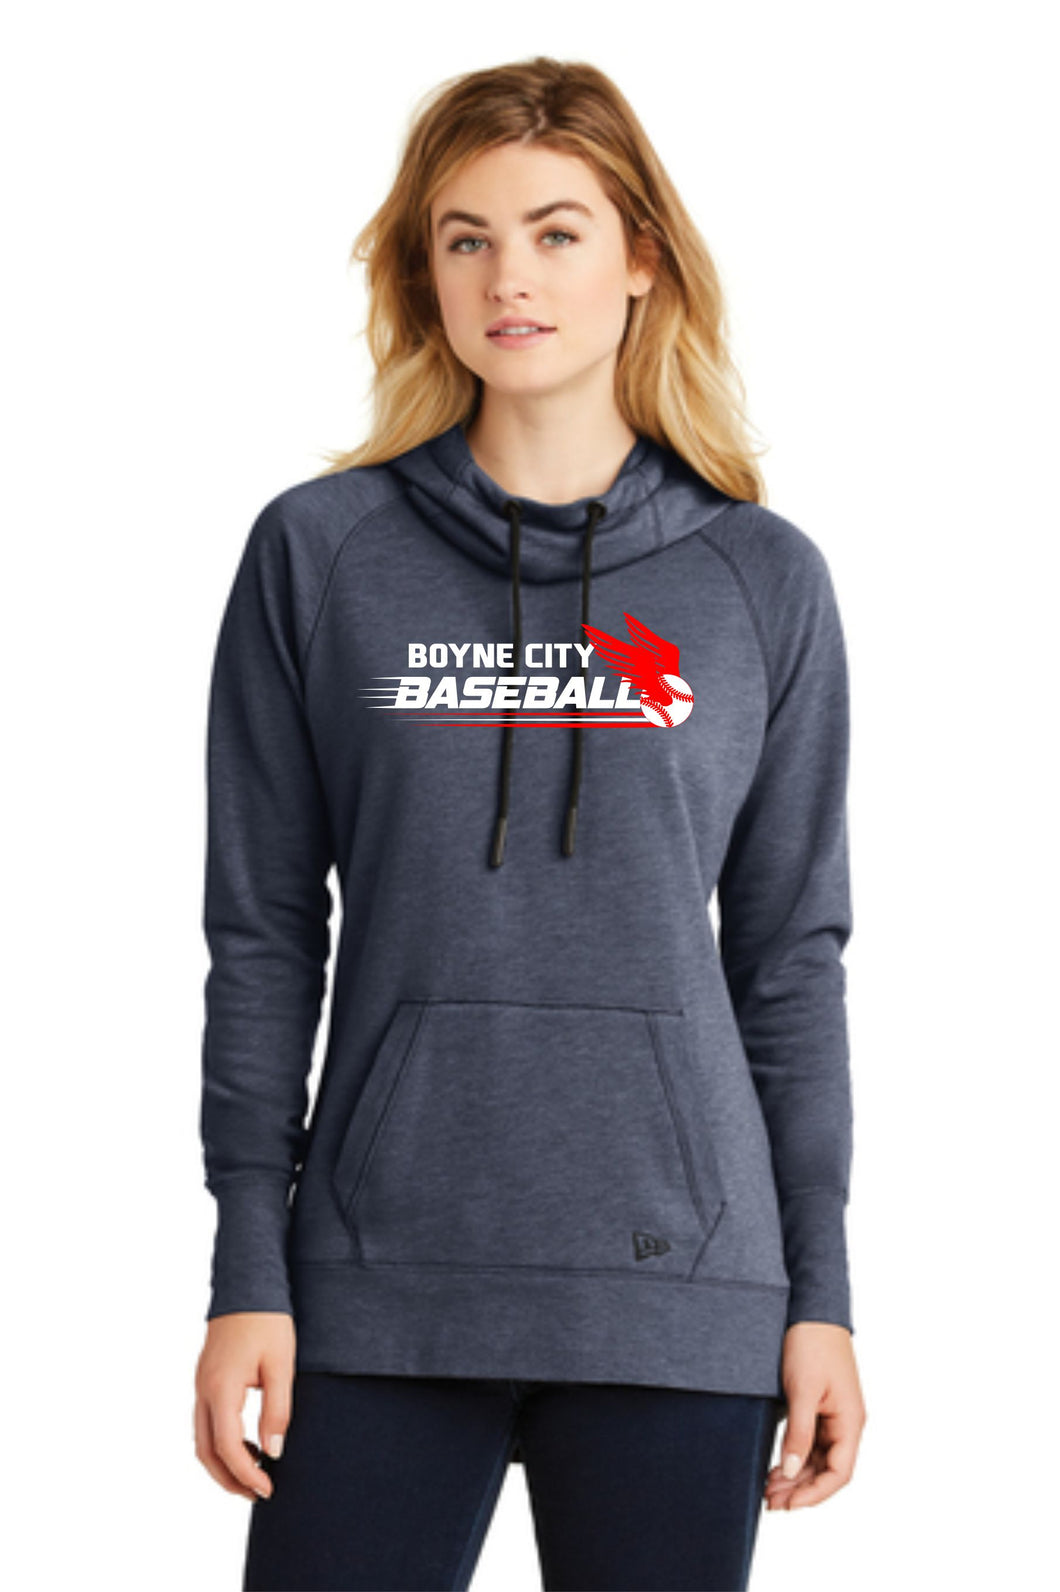 Ladies Tri-Blend Hooded Sweatshirt